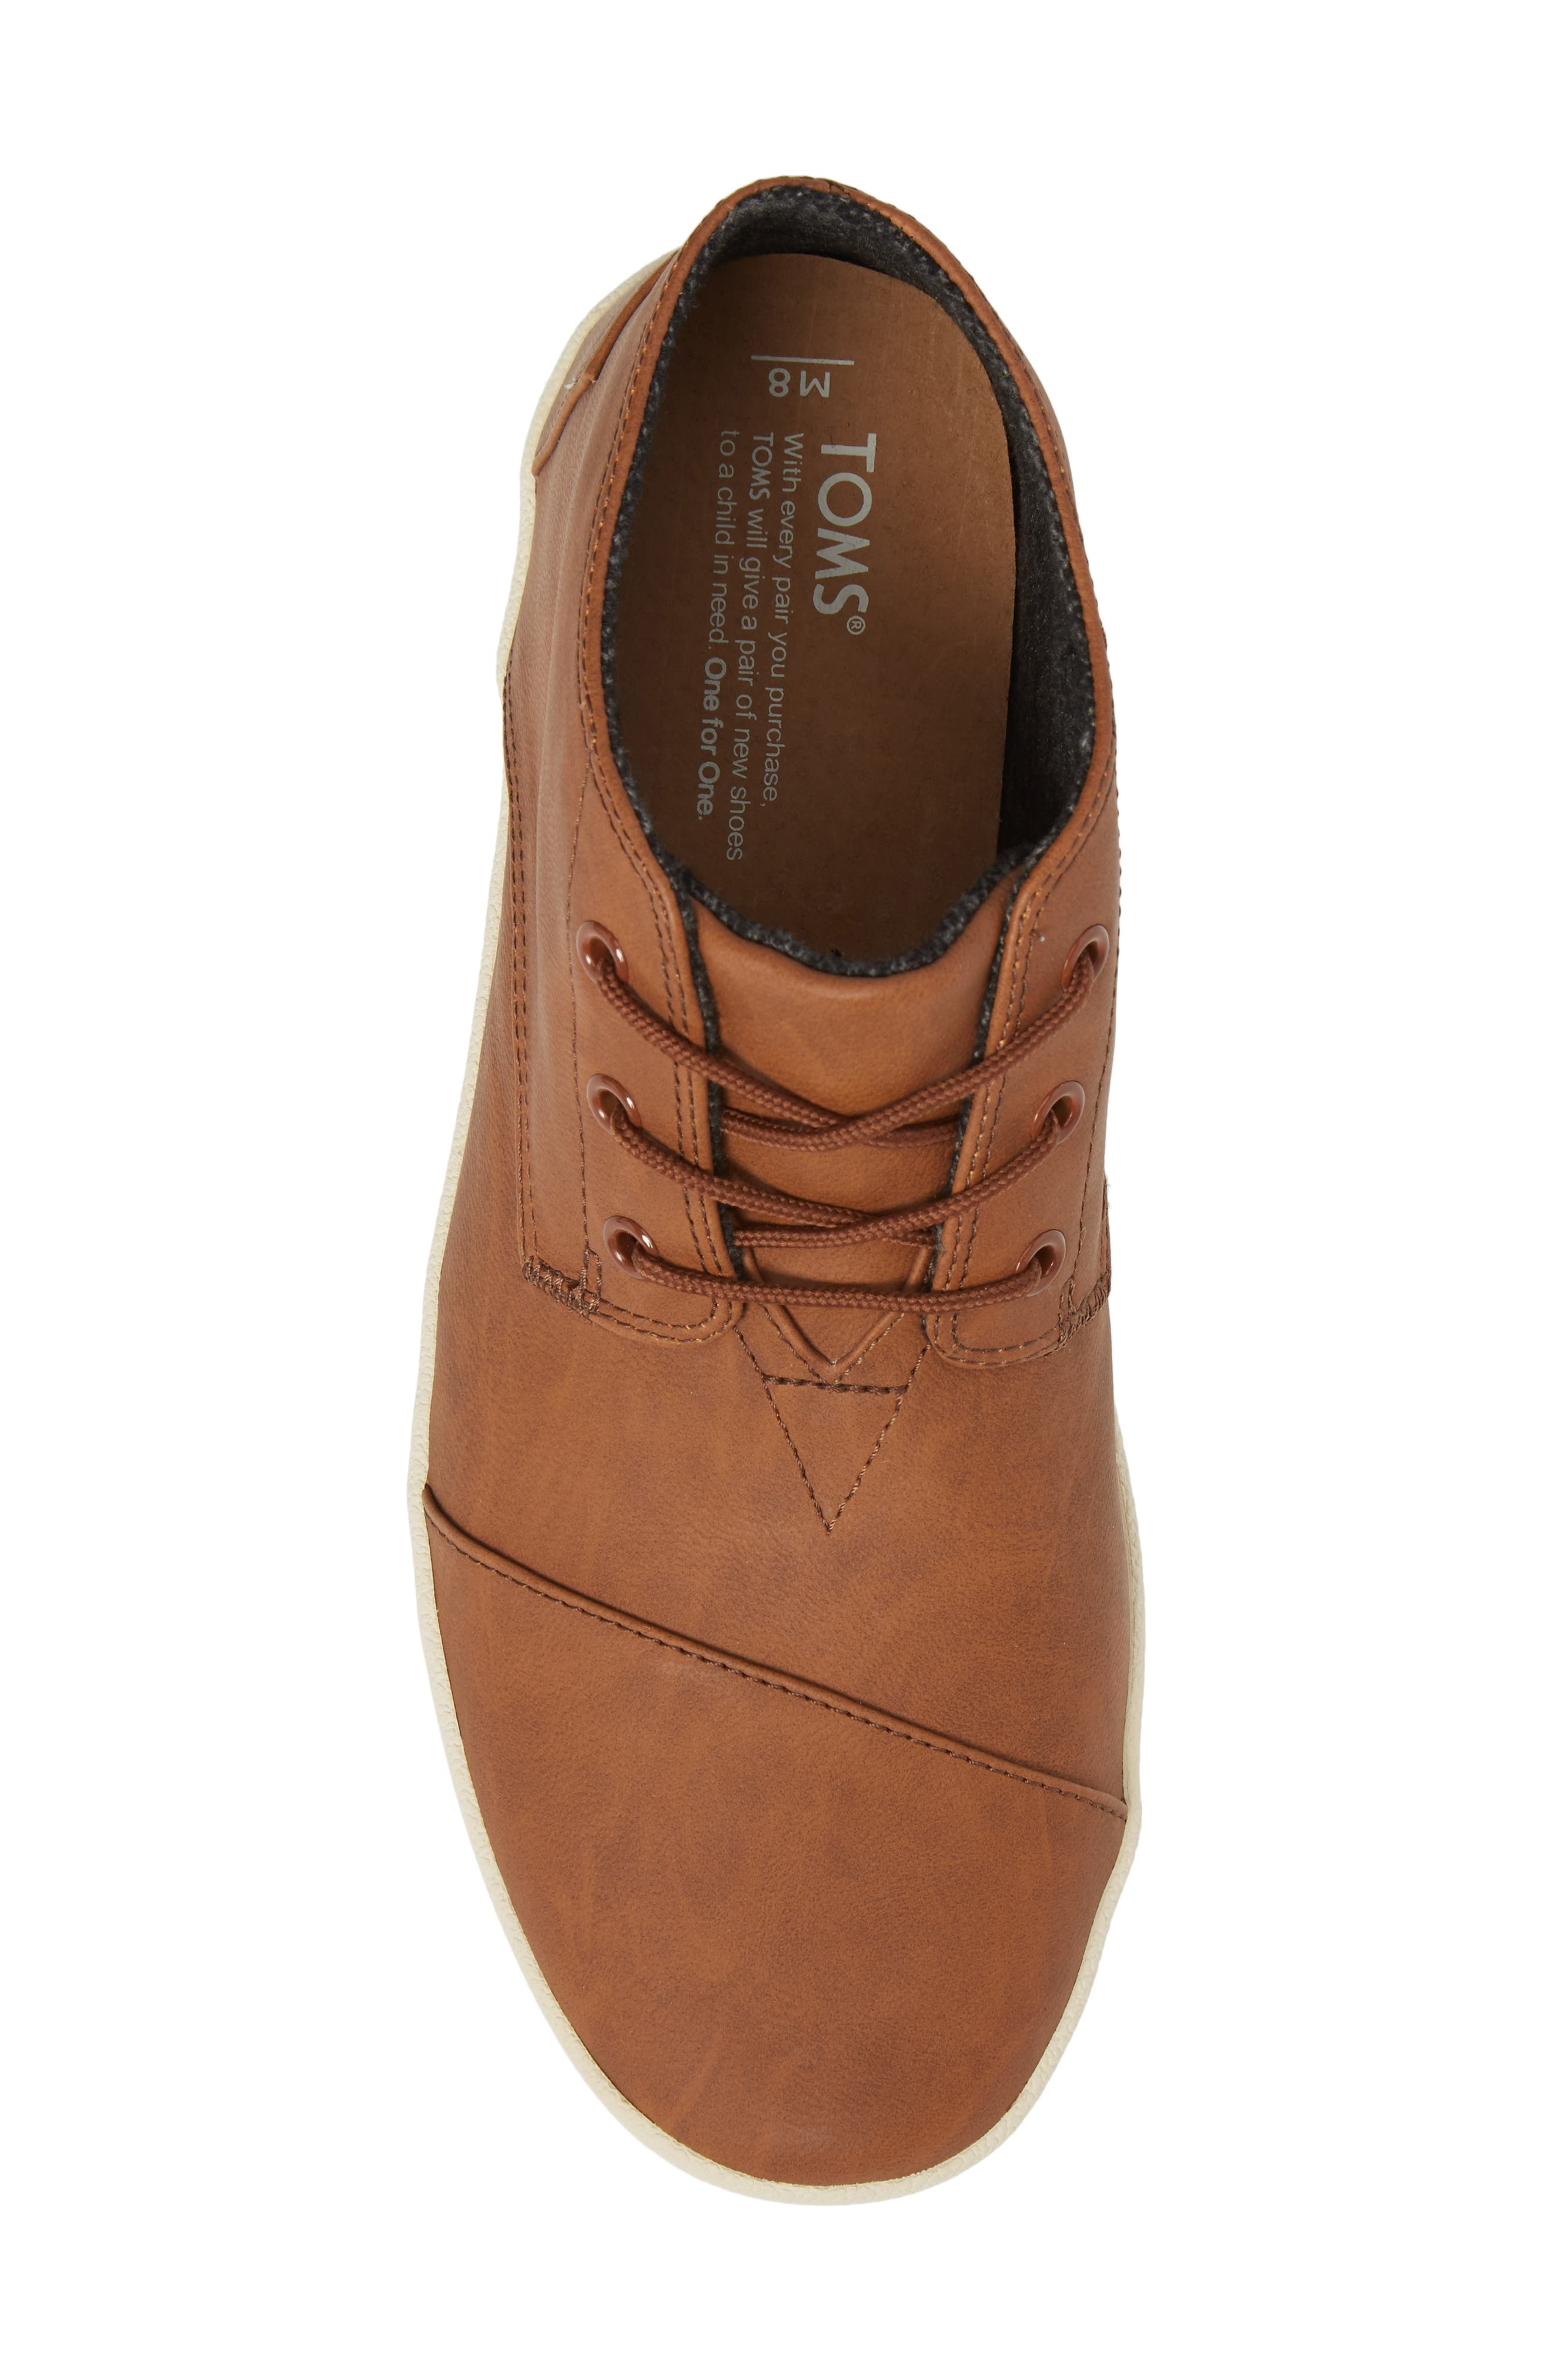 Paseo Mid Sneaker,                             Alternate thumbnail 5, color,                             Dark Earth Brown